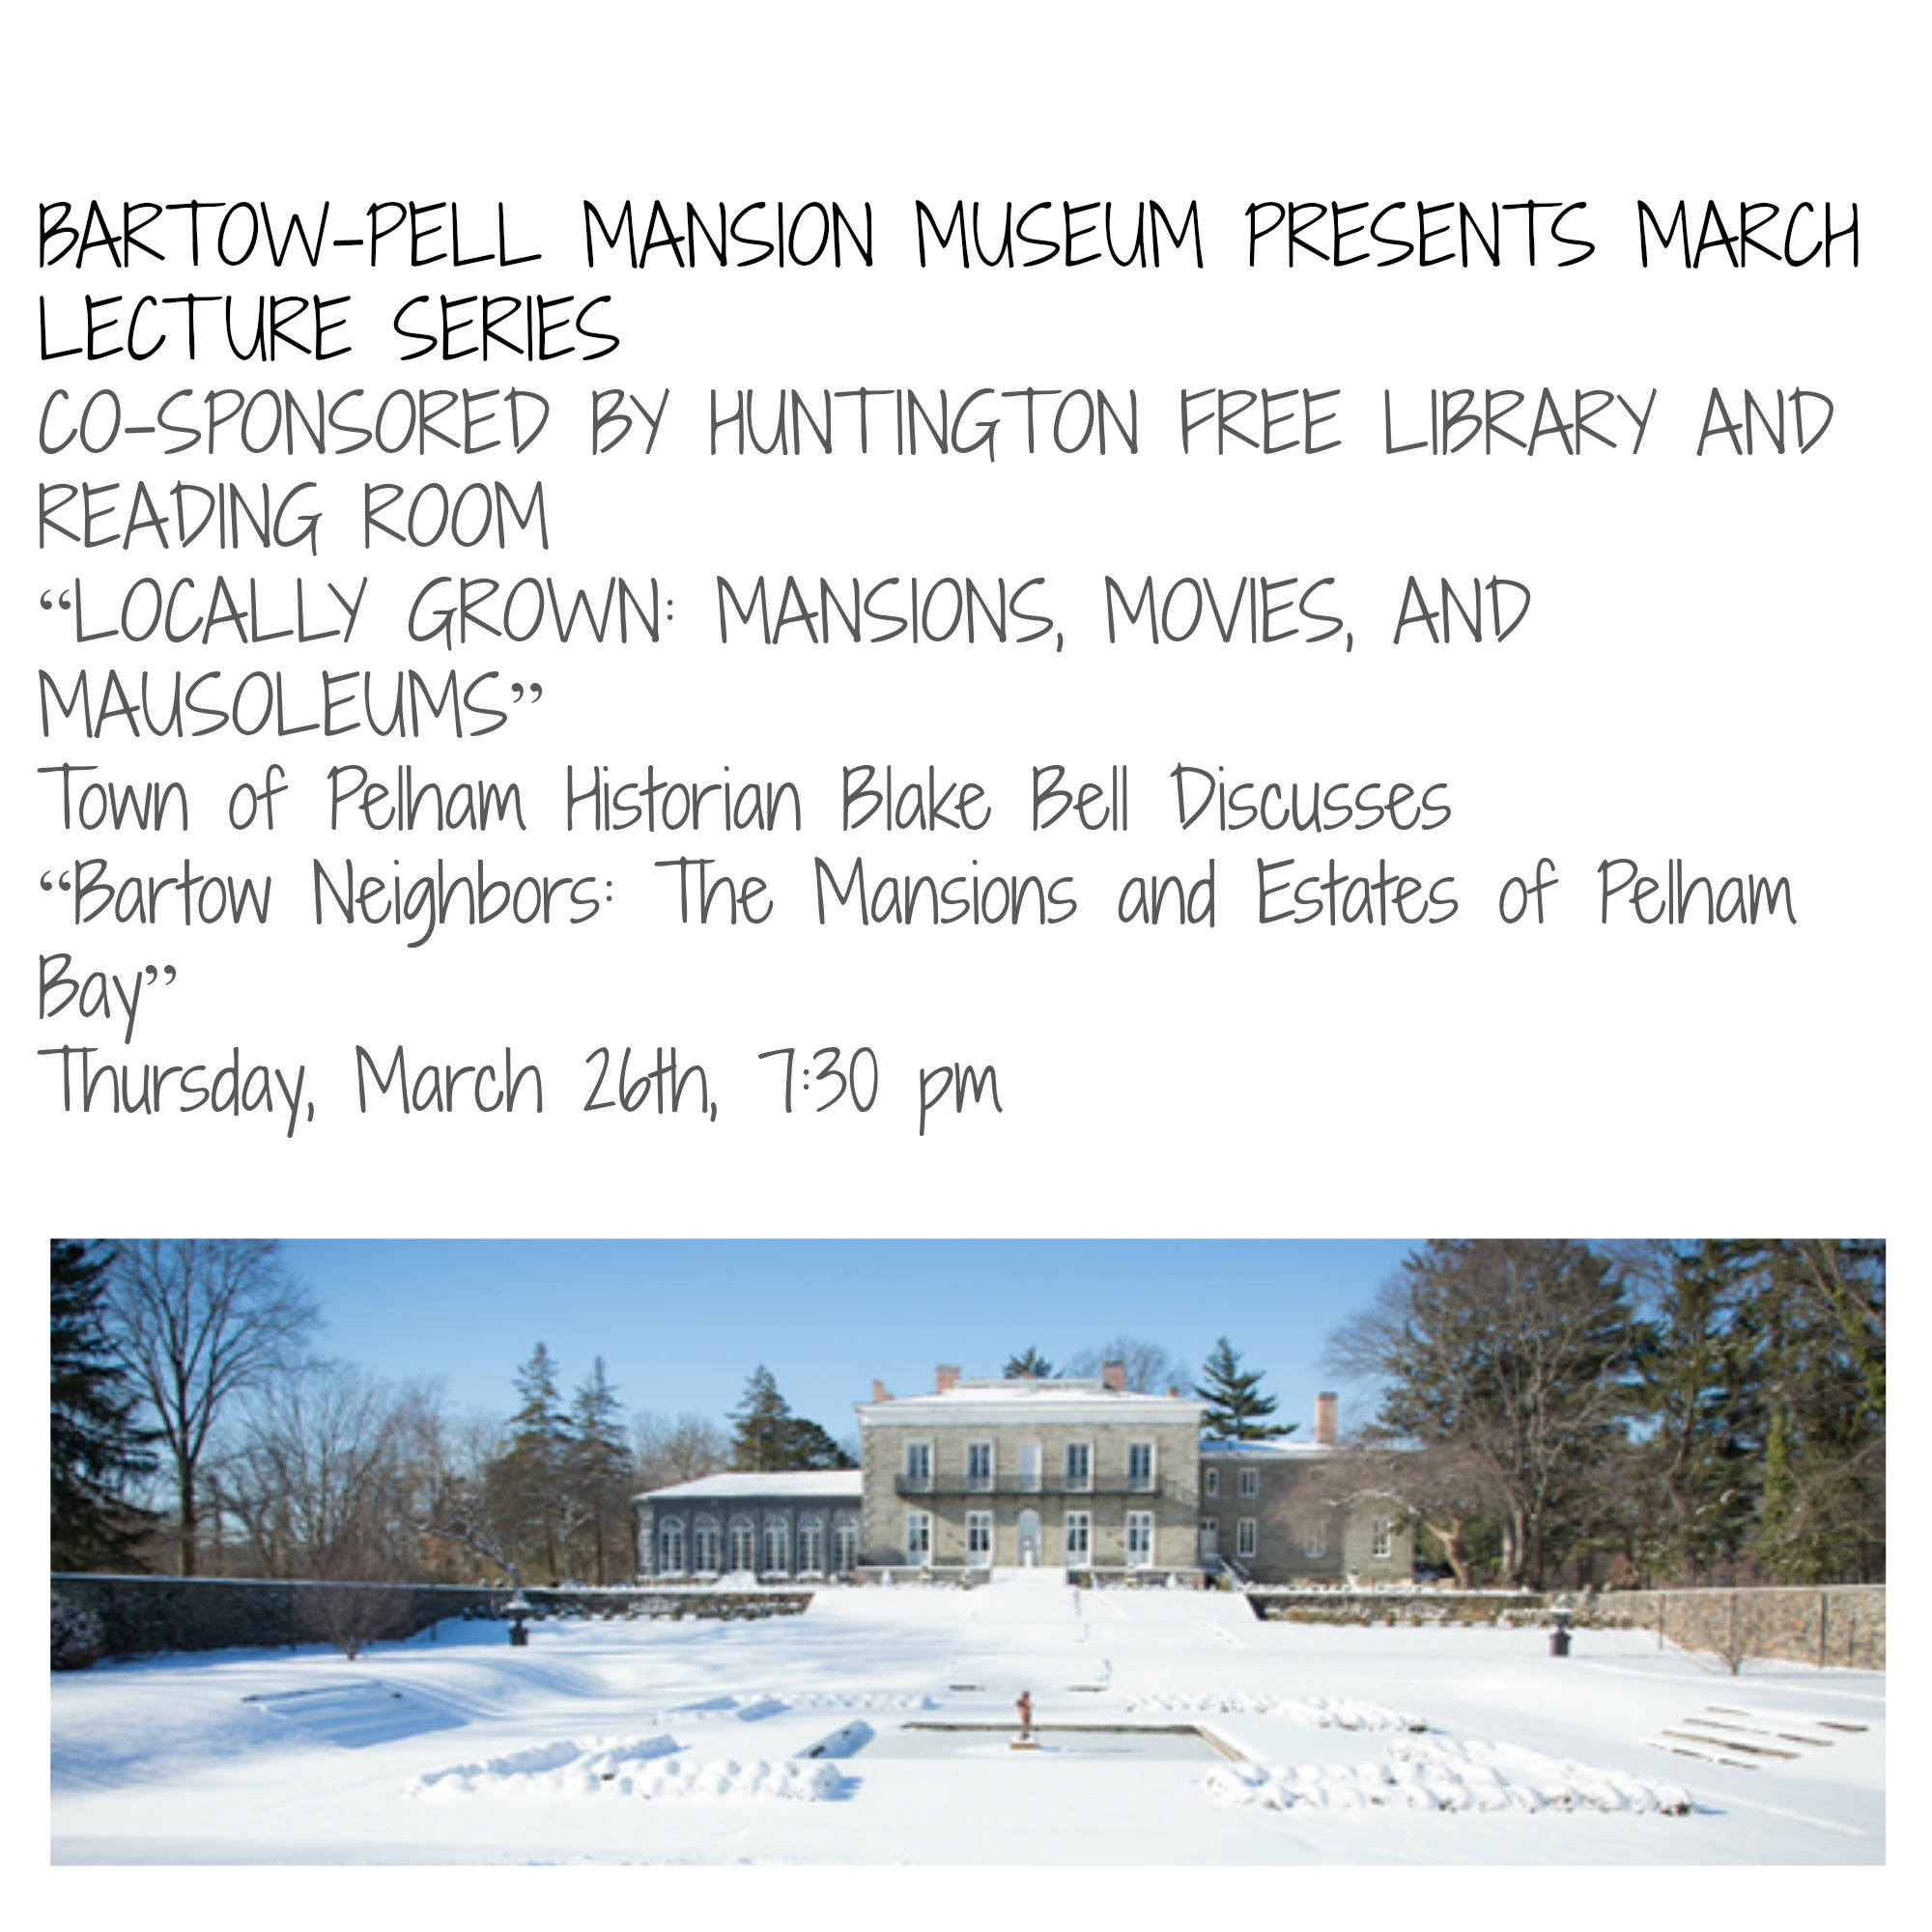 "Bartow-Pell Mansion Museum (BPMM) welcomes Town of Pelham Historian Blake Bell to present ""Bartow Neighbors: The Mansions and Estates of Pelham Bay"